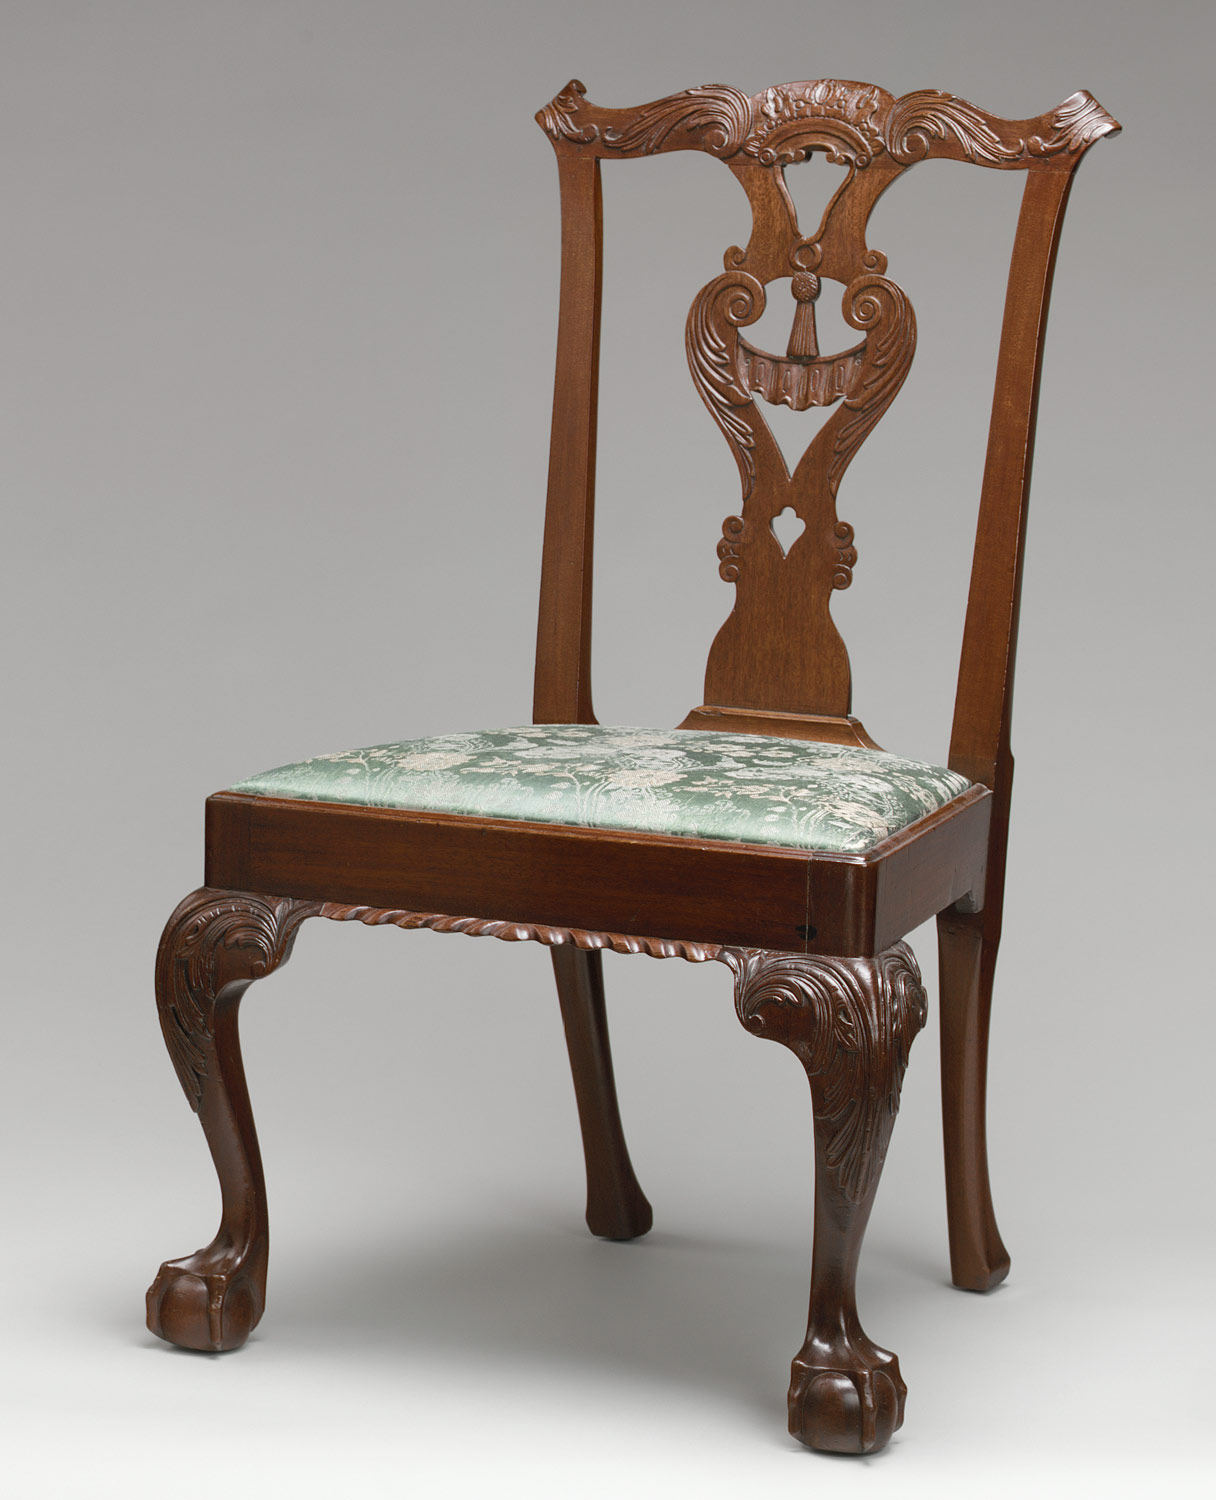 Queen anne chair history - Side Chair